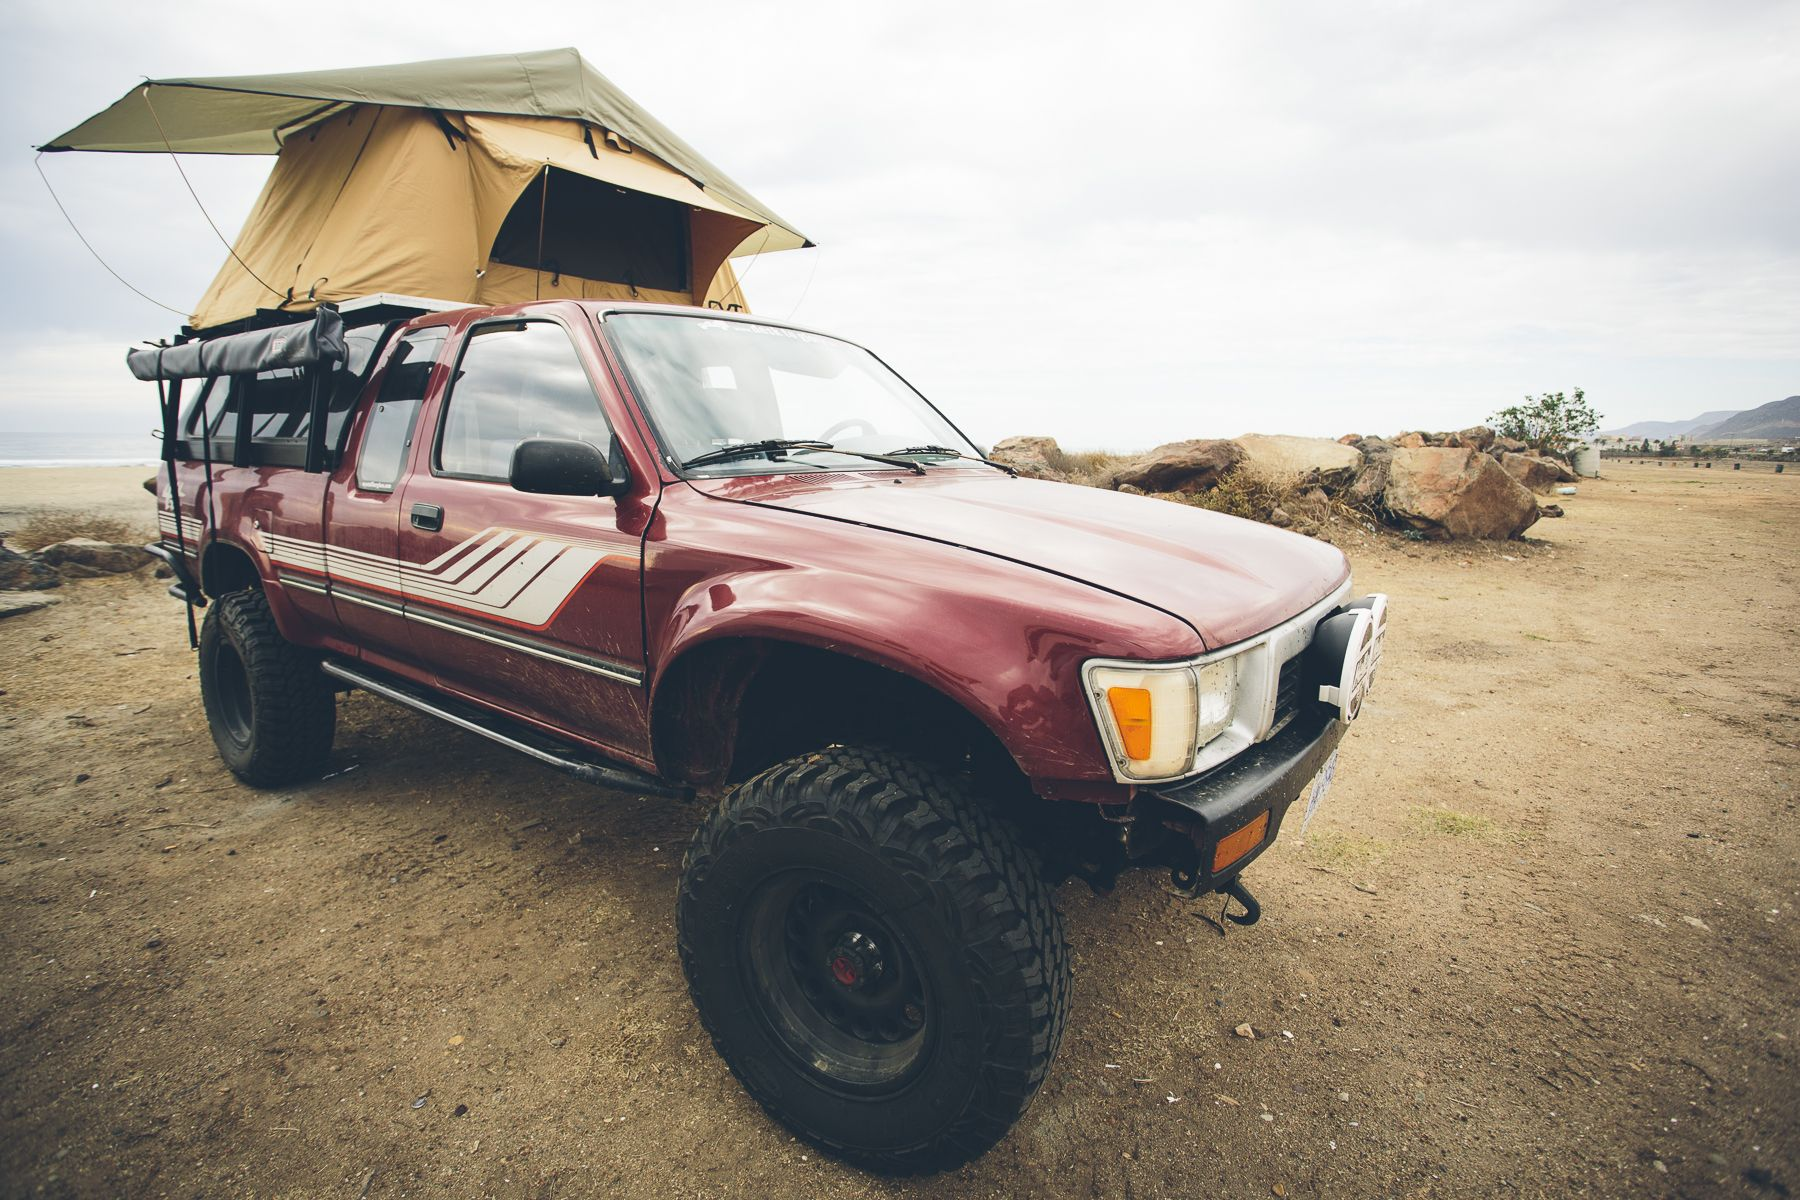 Check our our Expedition Portal thread to check out the truck build! & 140116_DeskToGlory_CascadiaTents-3 | toyotau0027s | Pinterest | Roof ...